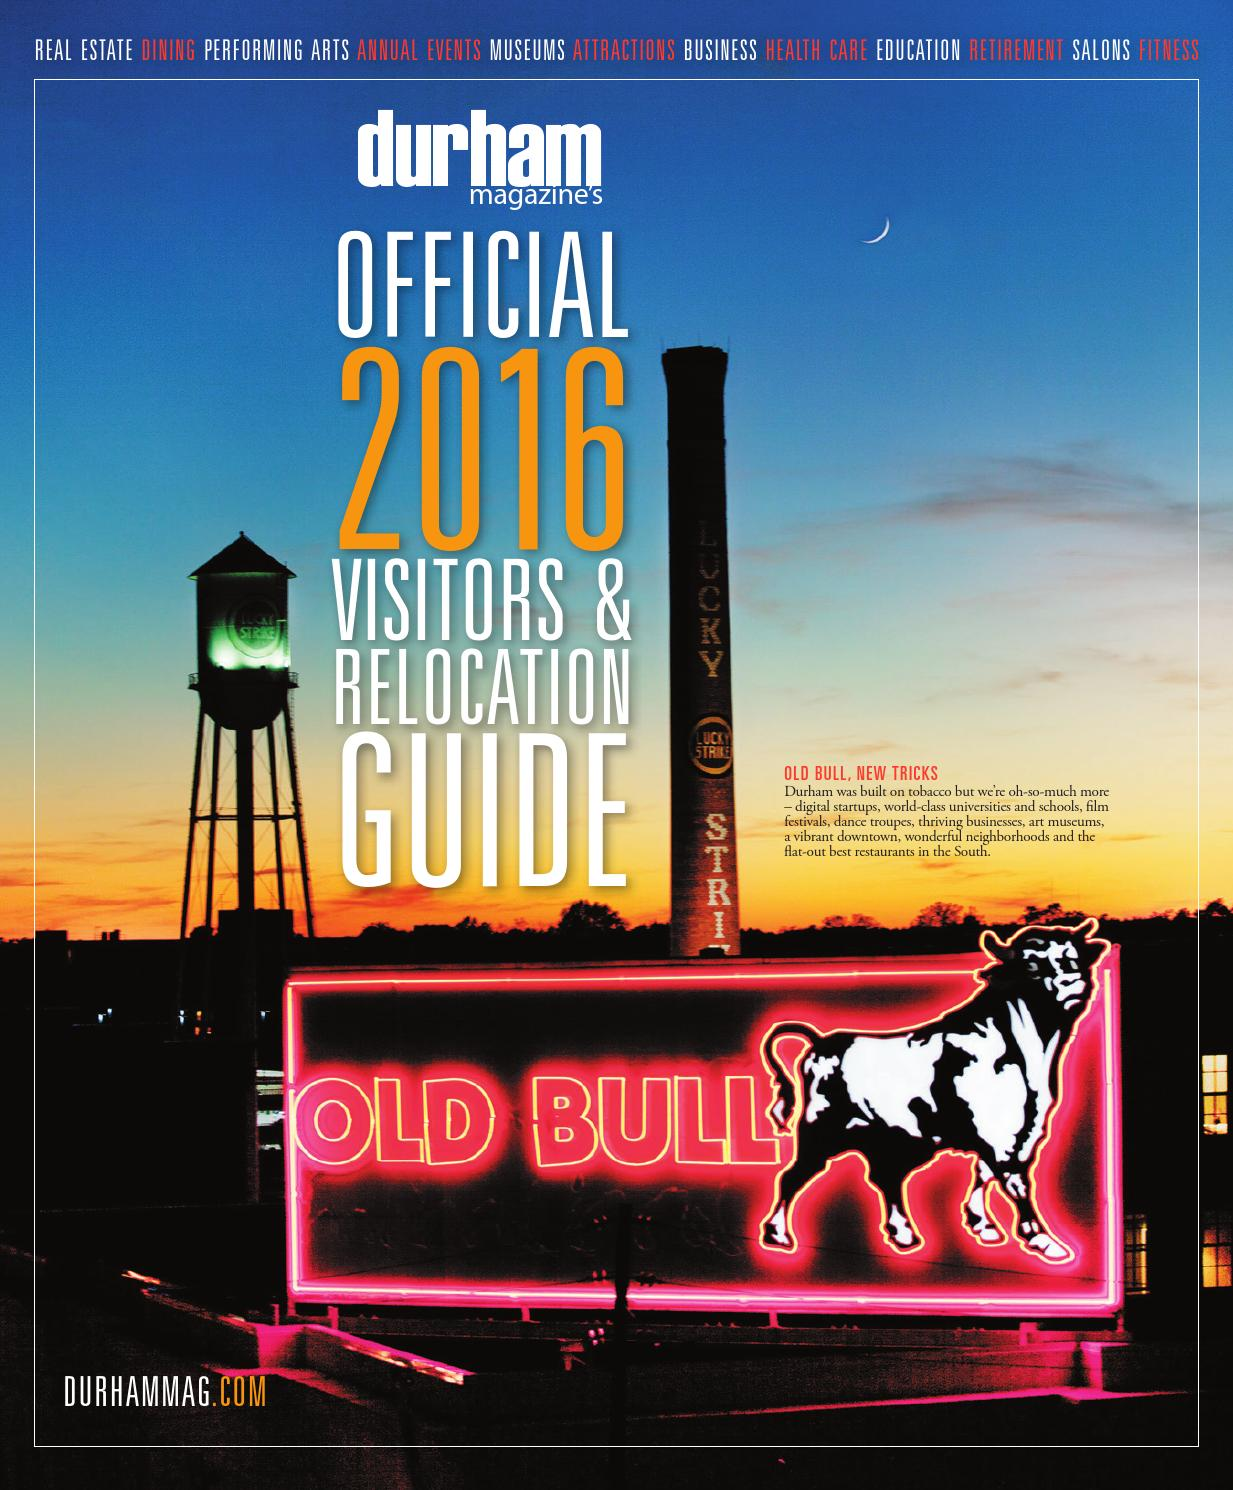 chapel hill ors and relocation guide by shannon media 2015 chapel hill ors and relocation guide by shannon media issuu